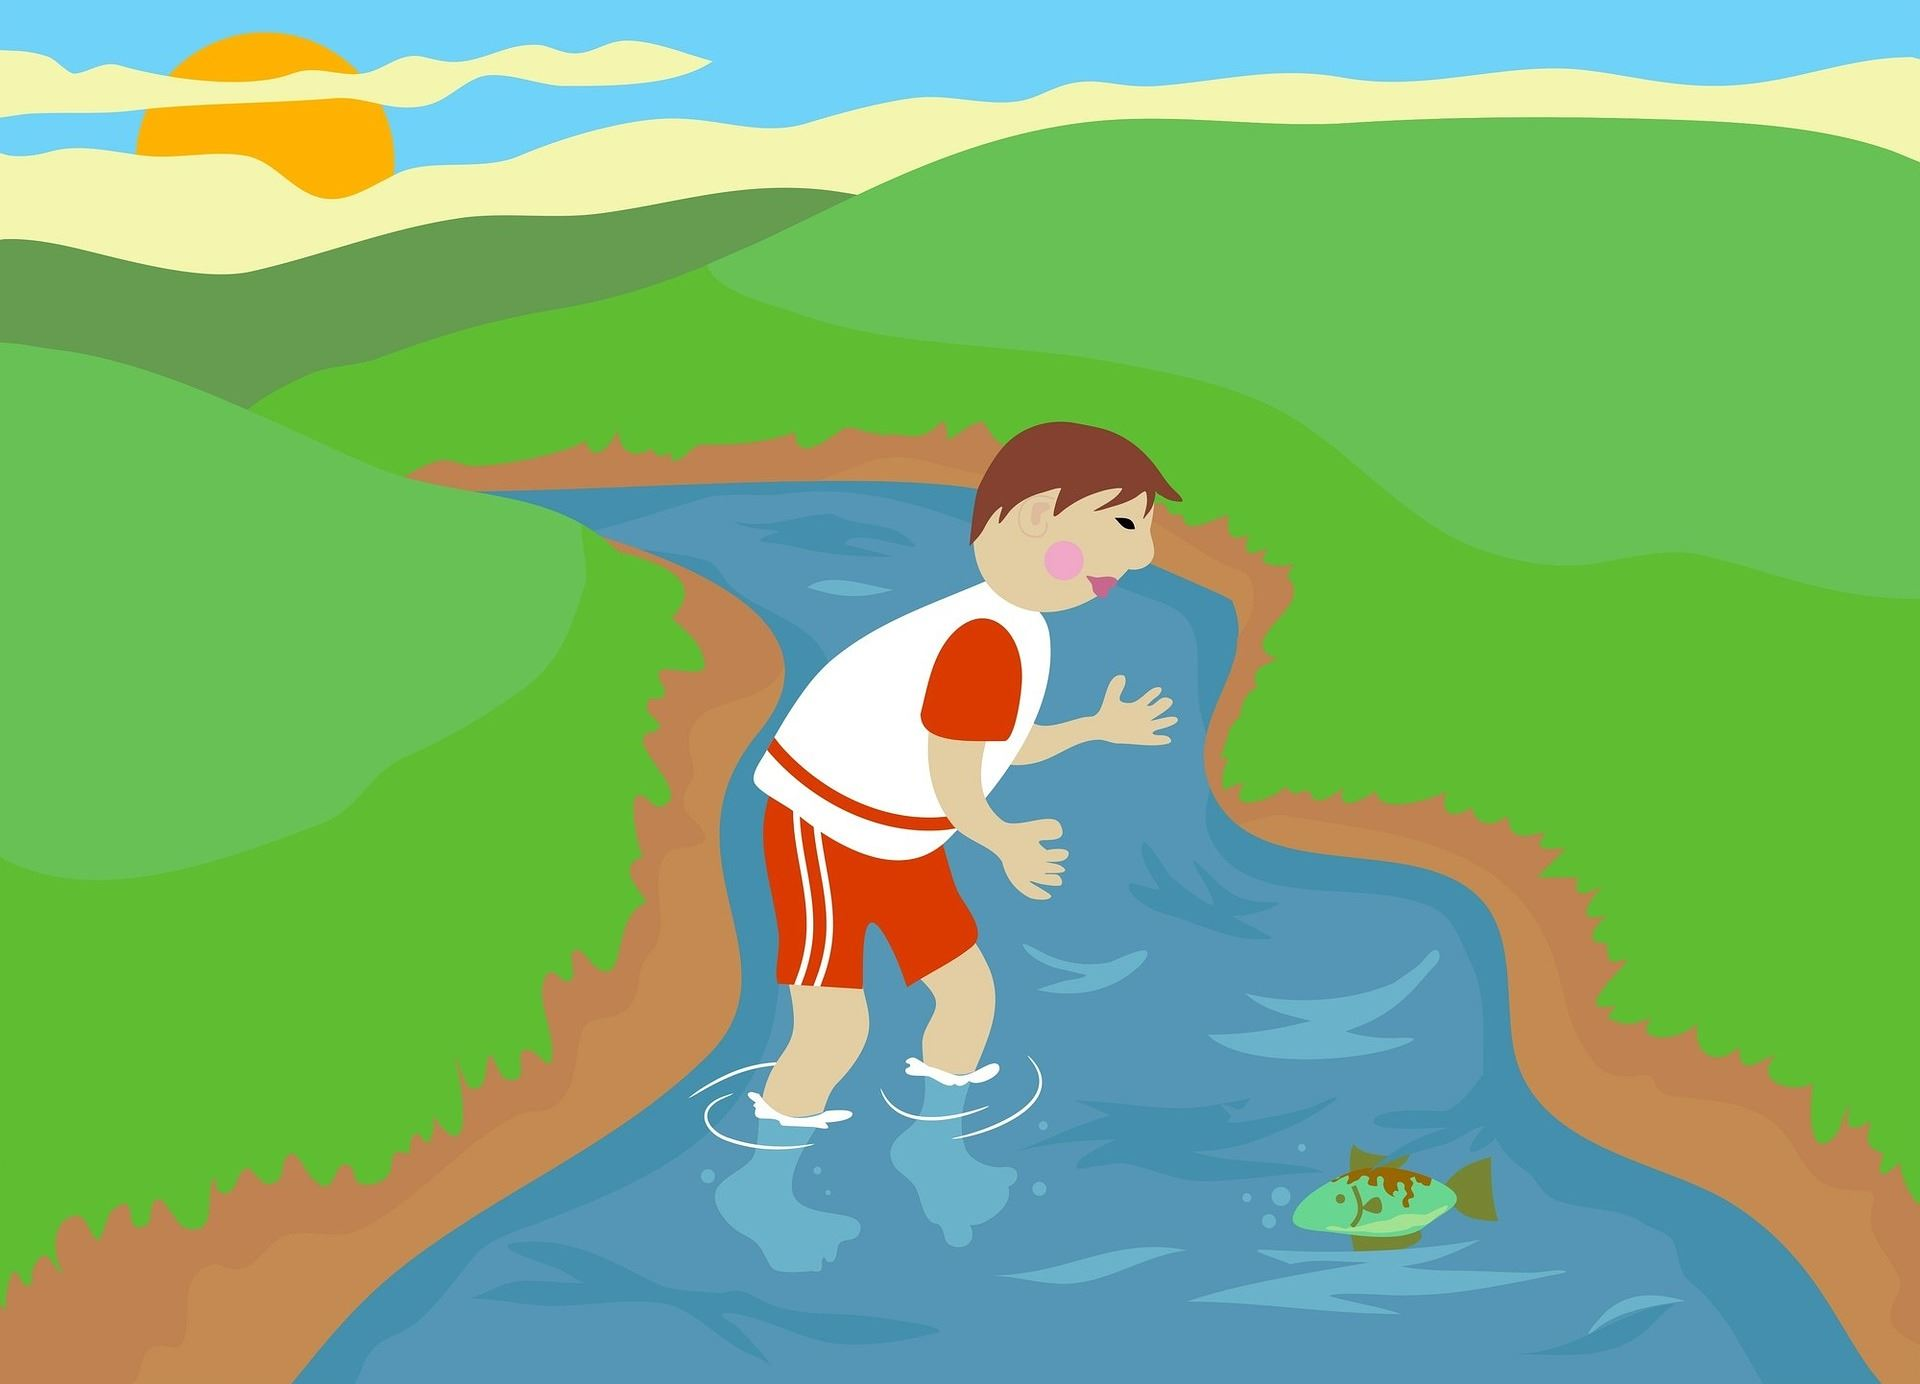 cartoon drawing of a boy playing in a stream